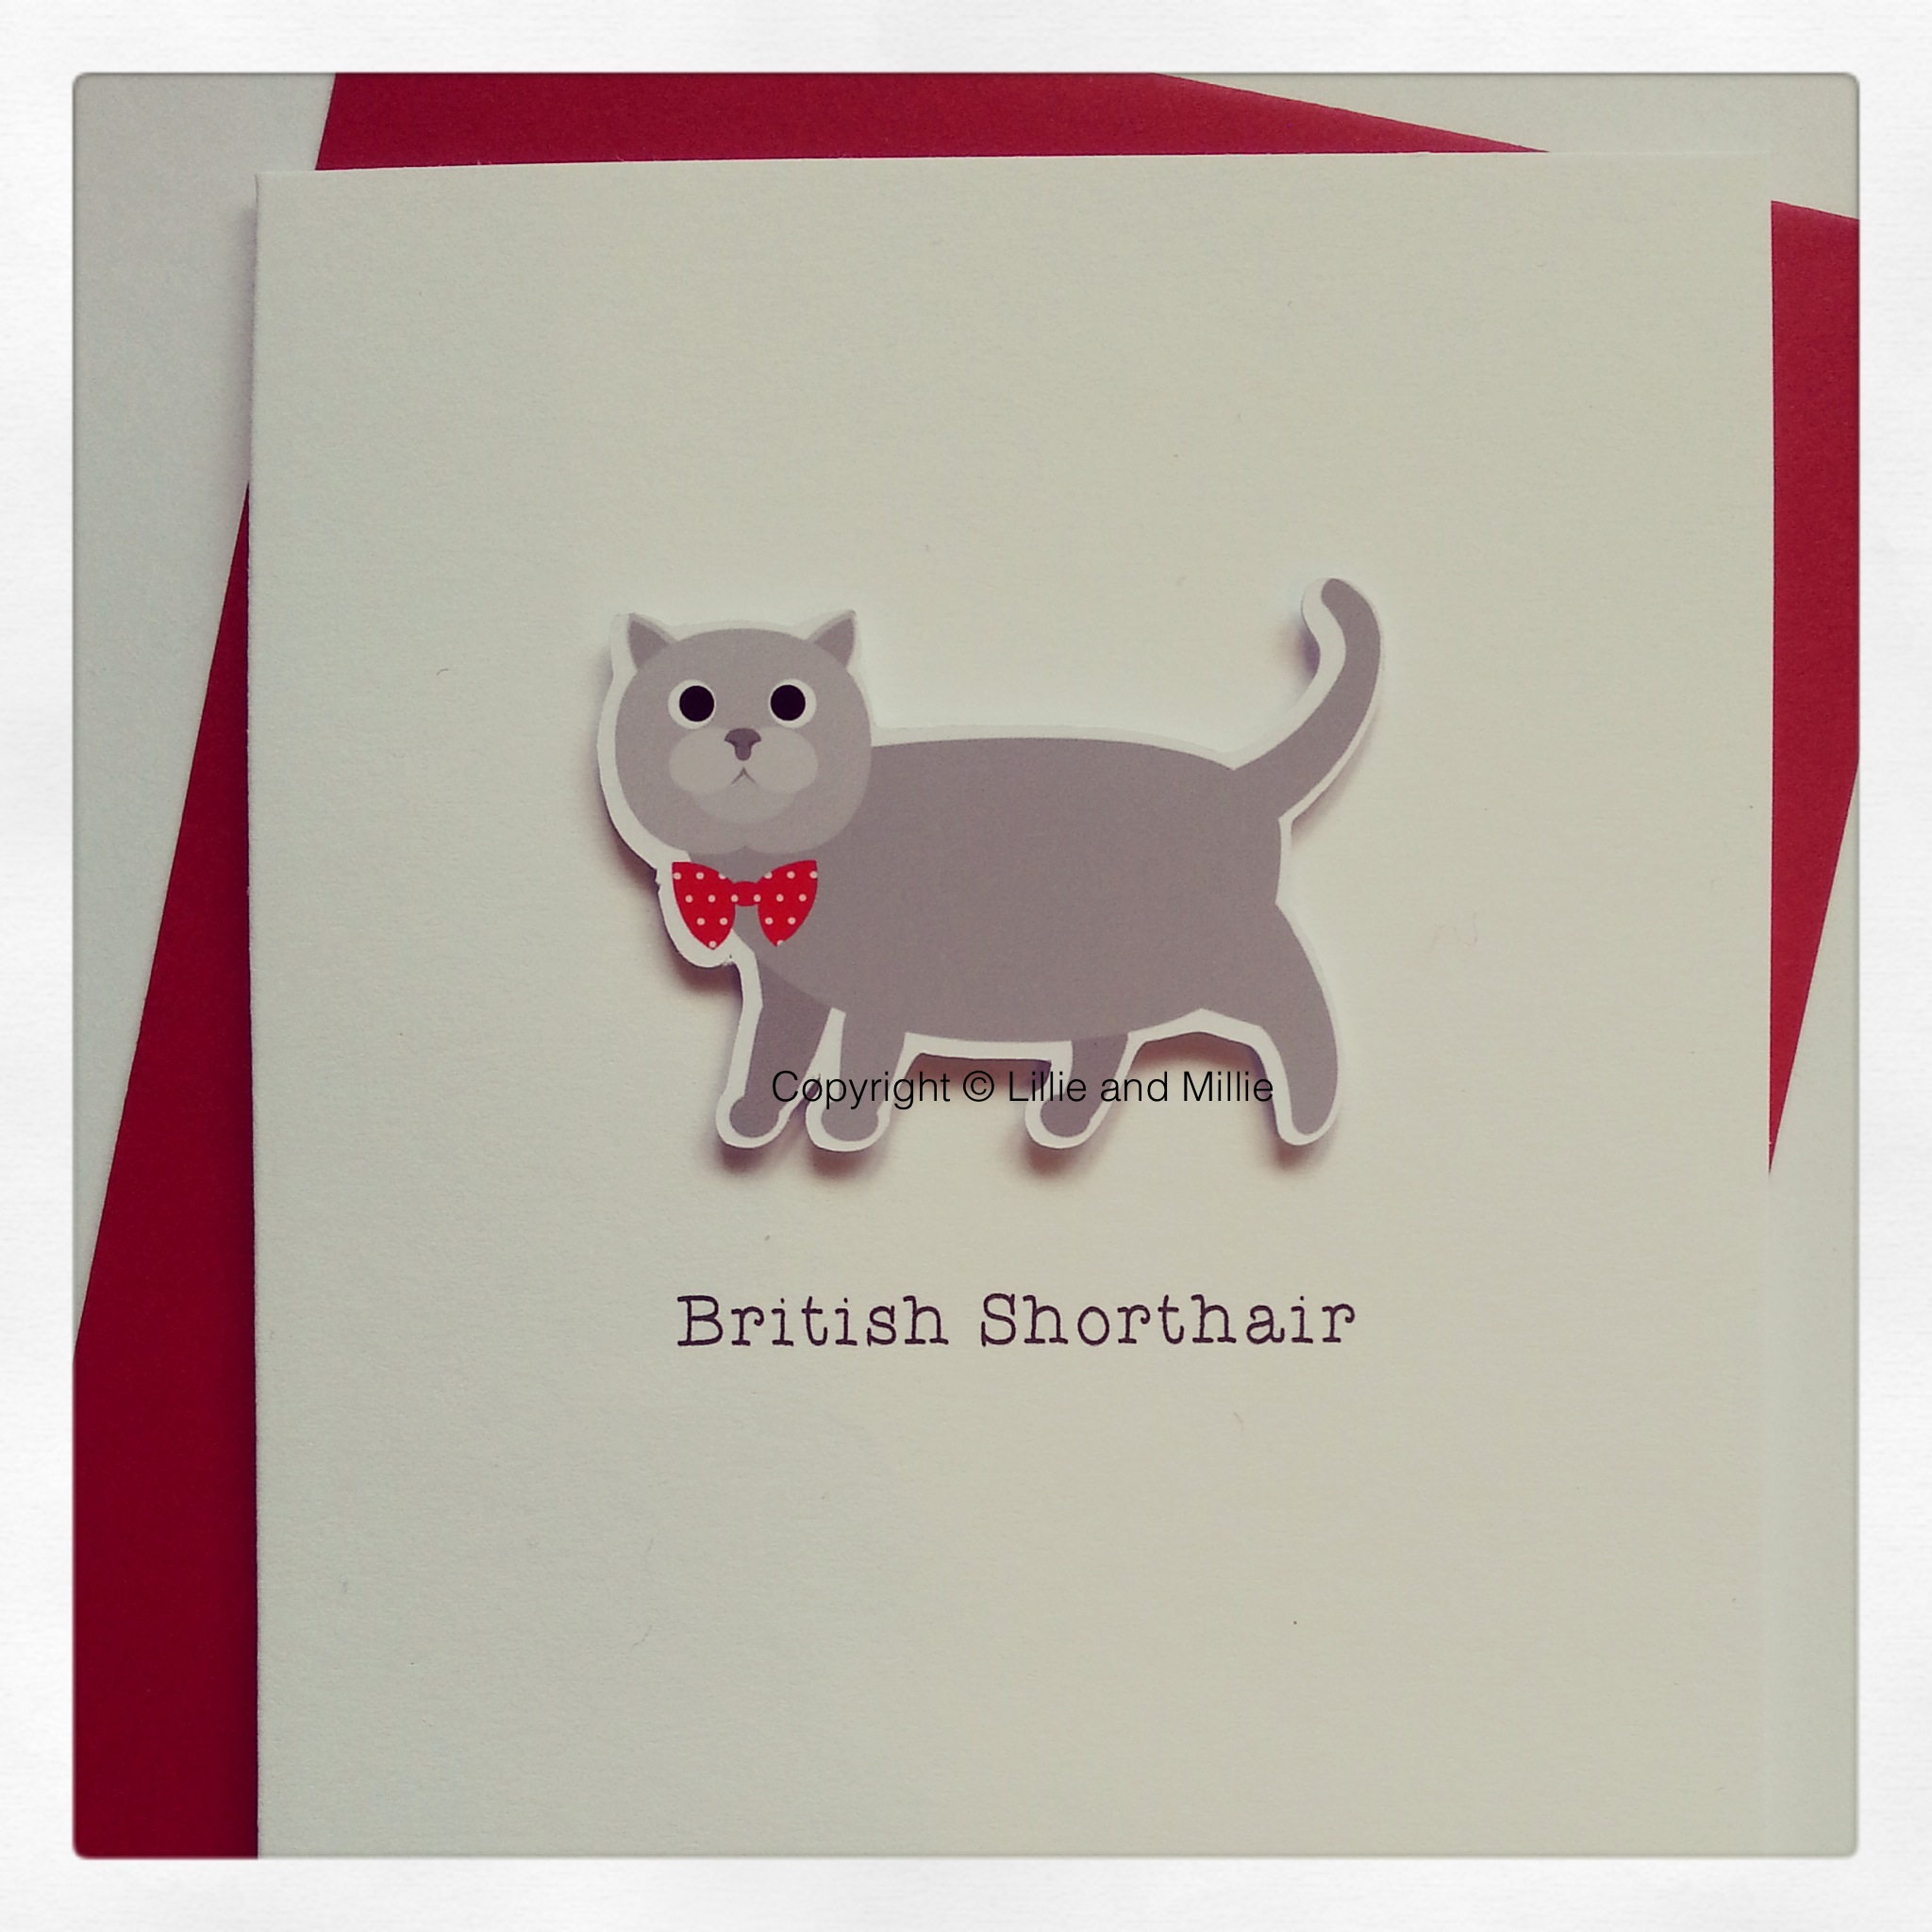 British Shorthair Cute and Cuddly Cat Greetings Card